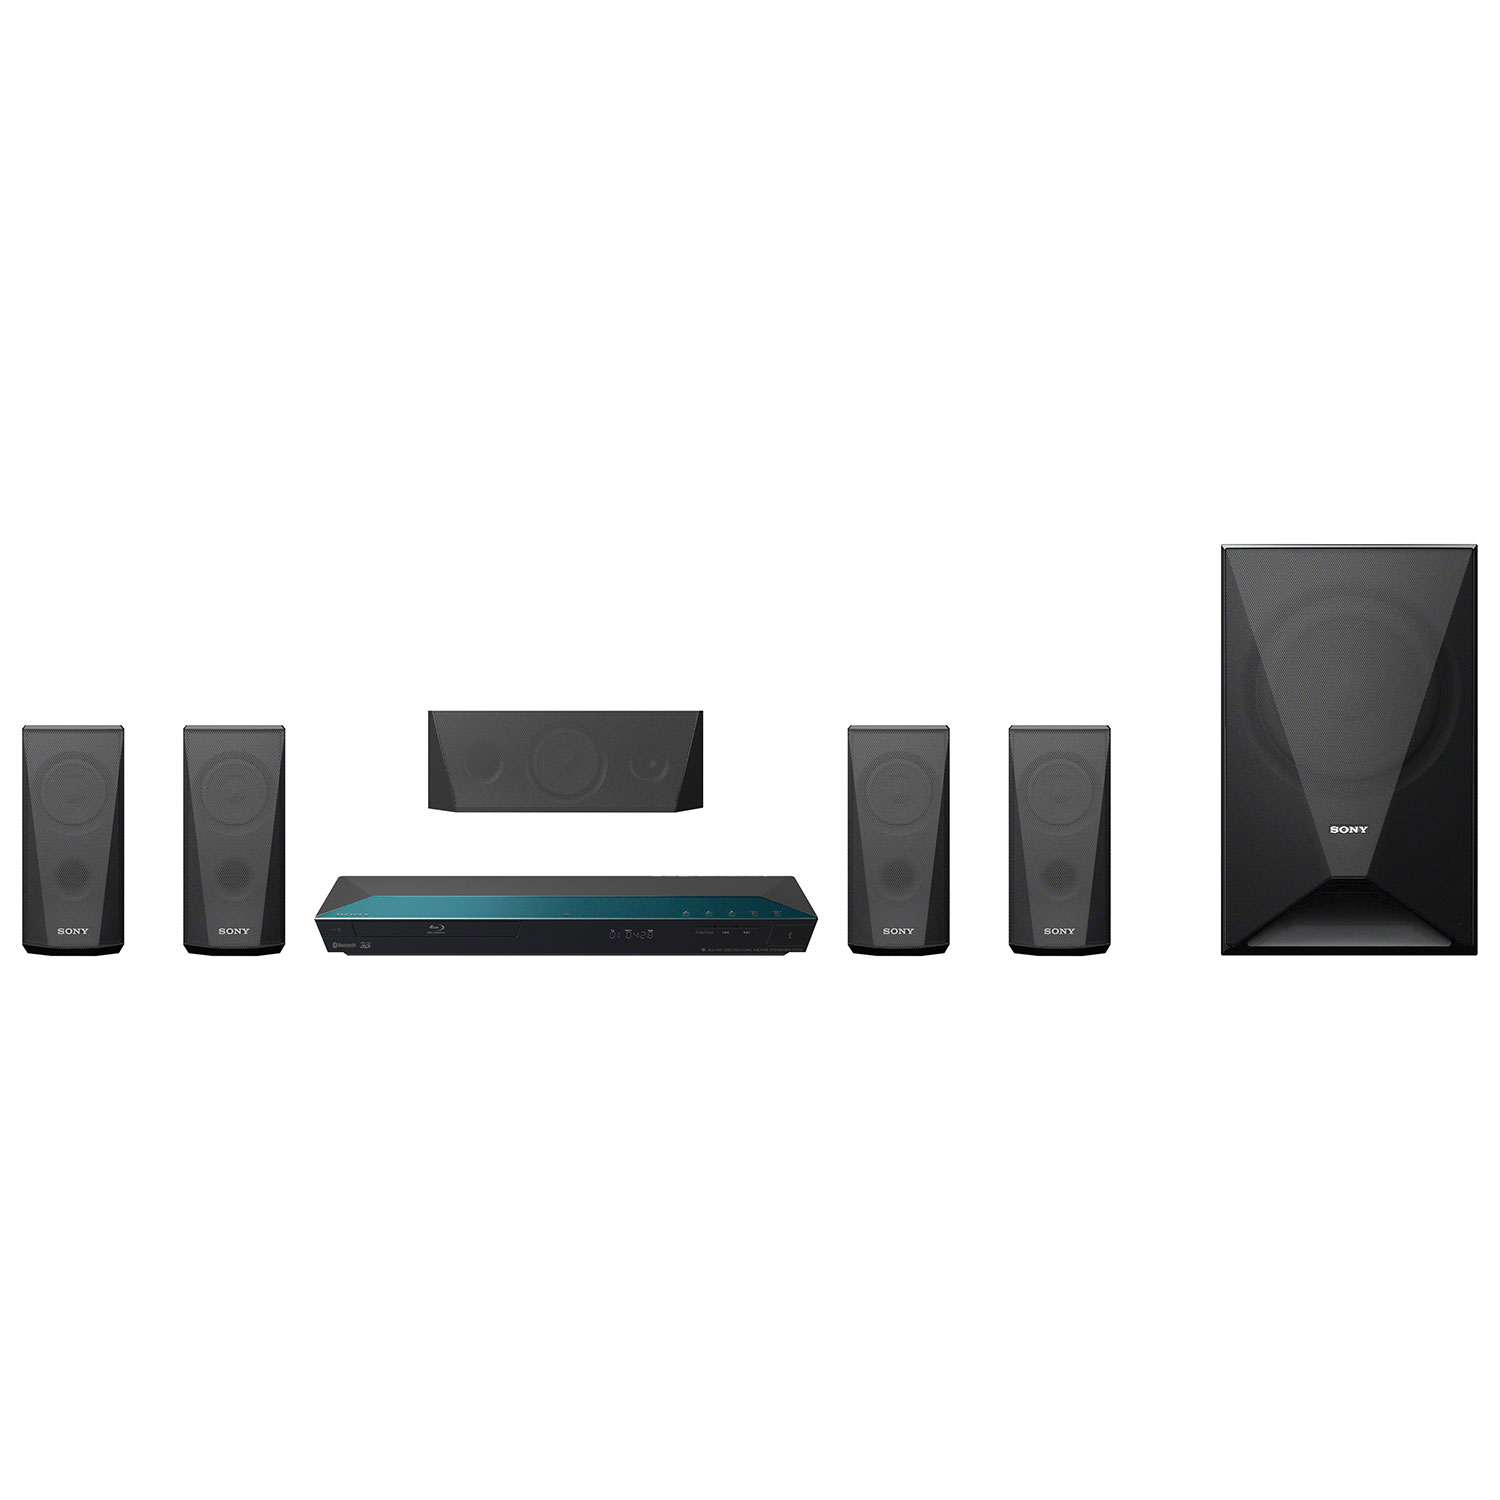 sony surround sound system. sony bdve3100 1000-watt 5.1 channel 3d blu-ray home theatre system : blu-ray/dvd systems - best buy canada surround sound m